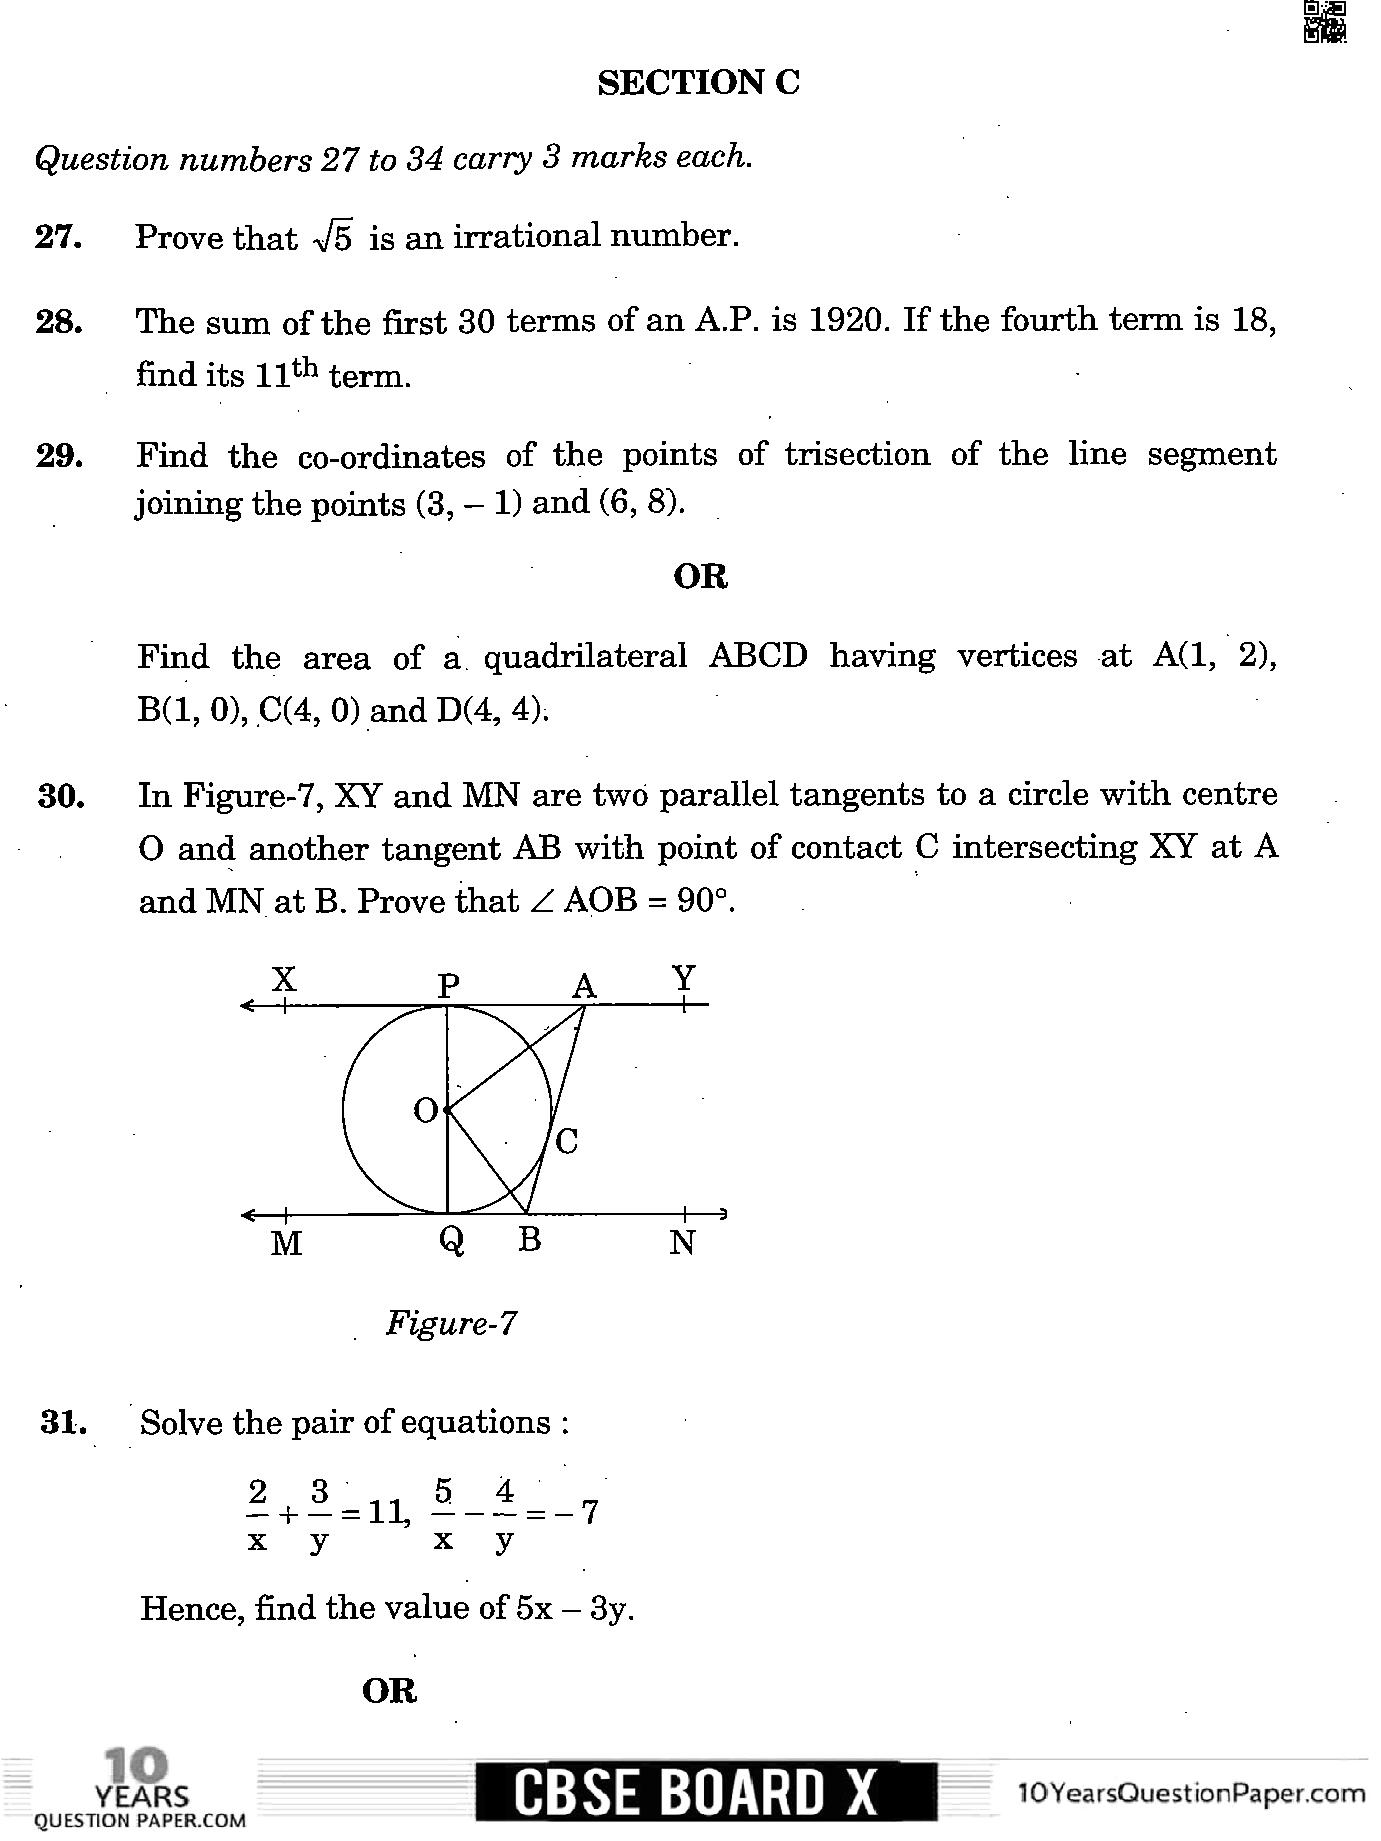 CBSE Class 10 Mathematics 2020 Question Paper